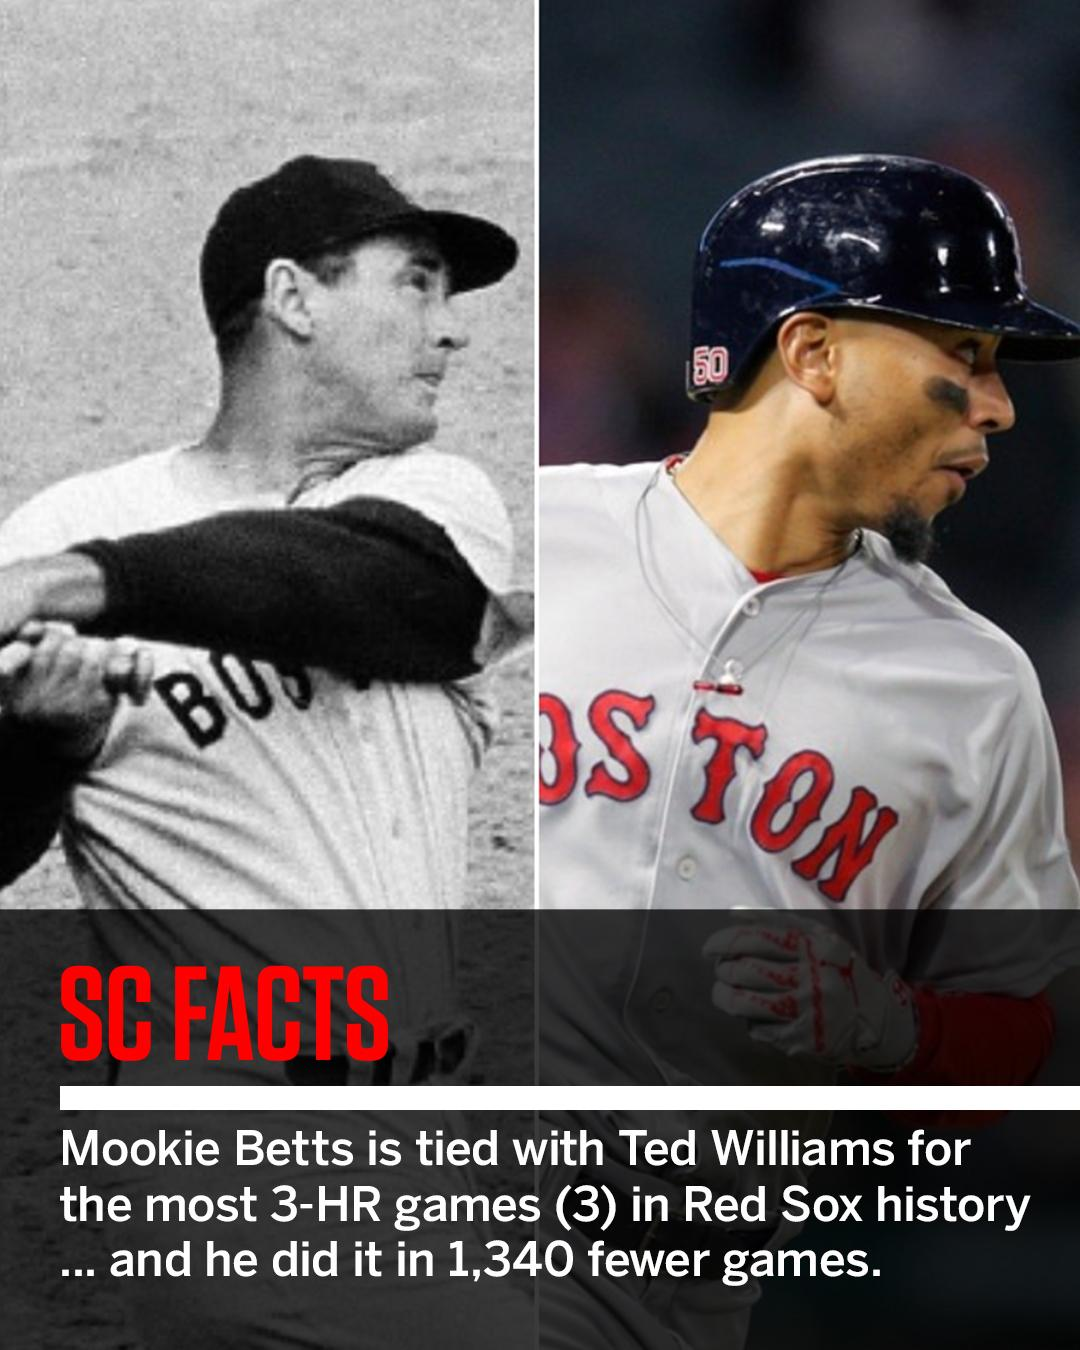 Always a good sign when you hit as well as Ted Williams. #SCFacts https://t.co/usRLLnj8bO